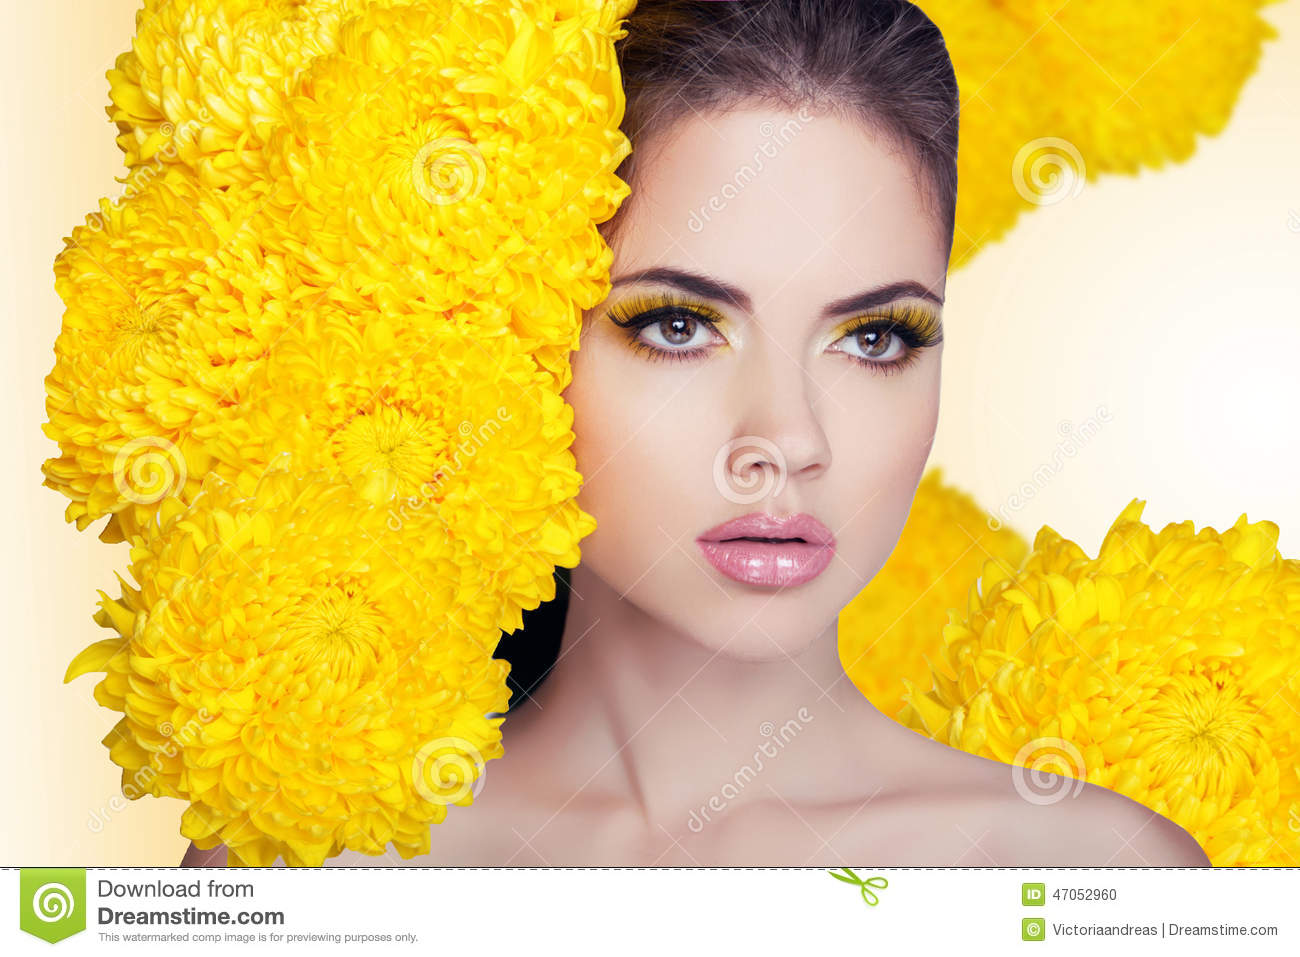 Fashion Beauty Hair: Fashion Beauty Model Girl With Flowers Hair. Makeup And